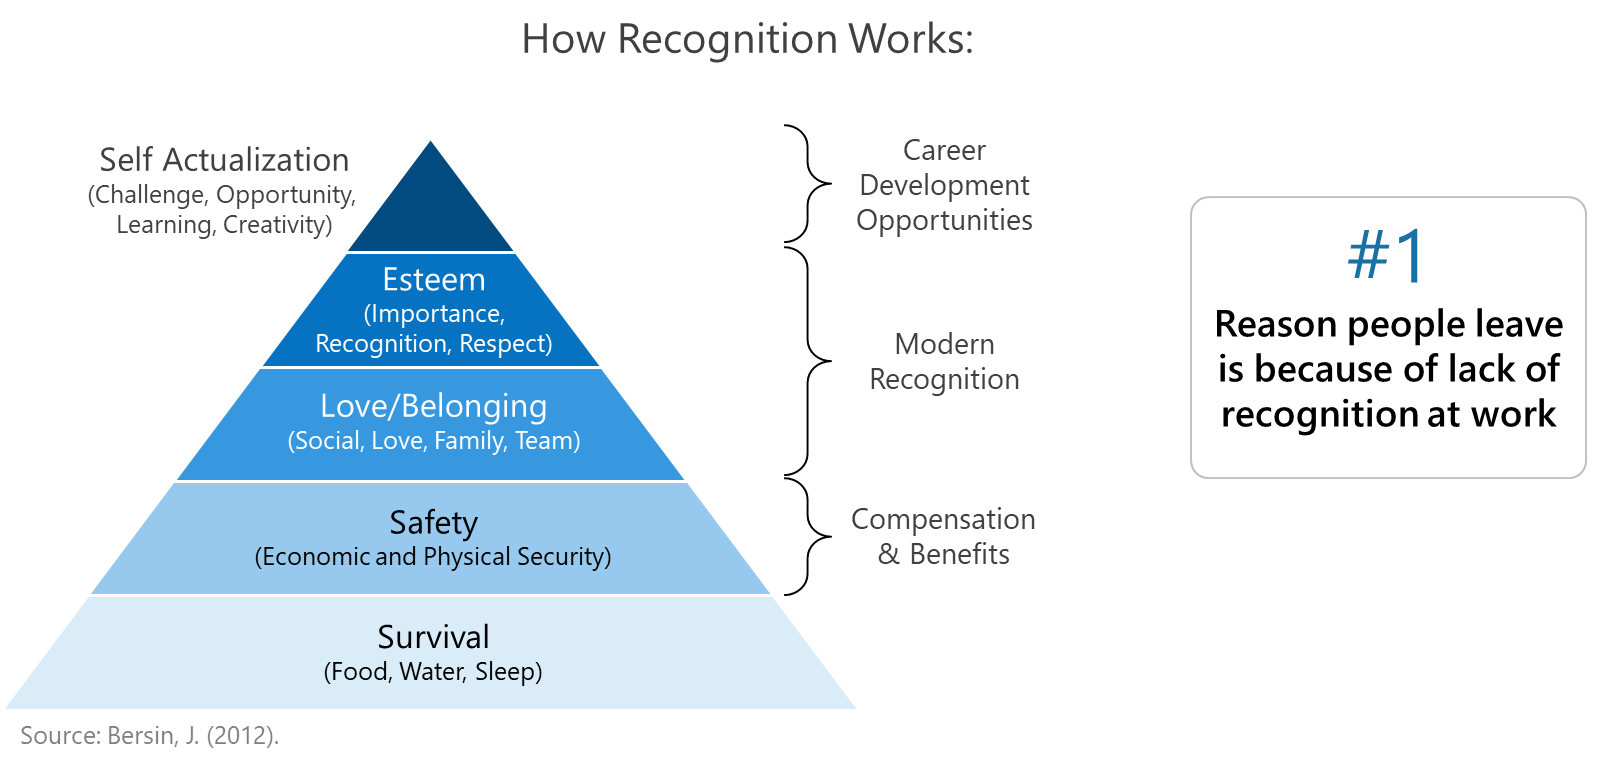 How Recognition Works